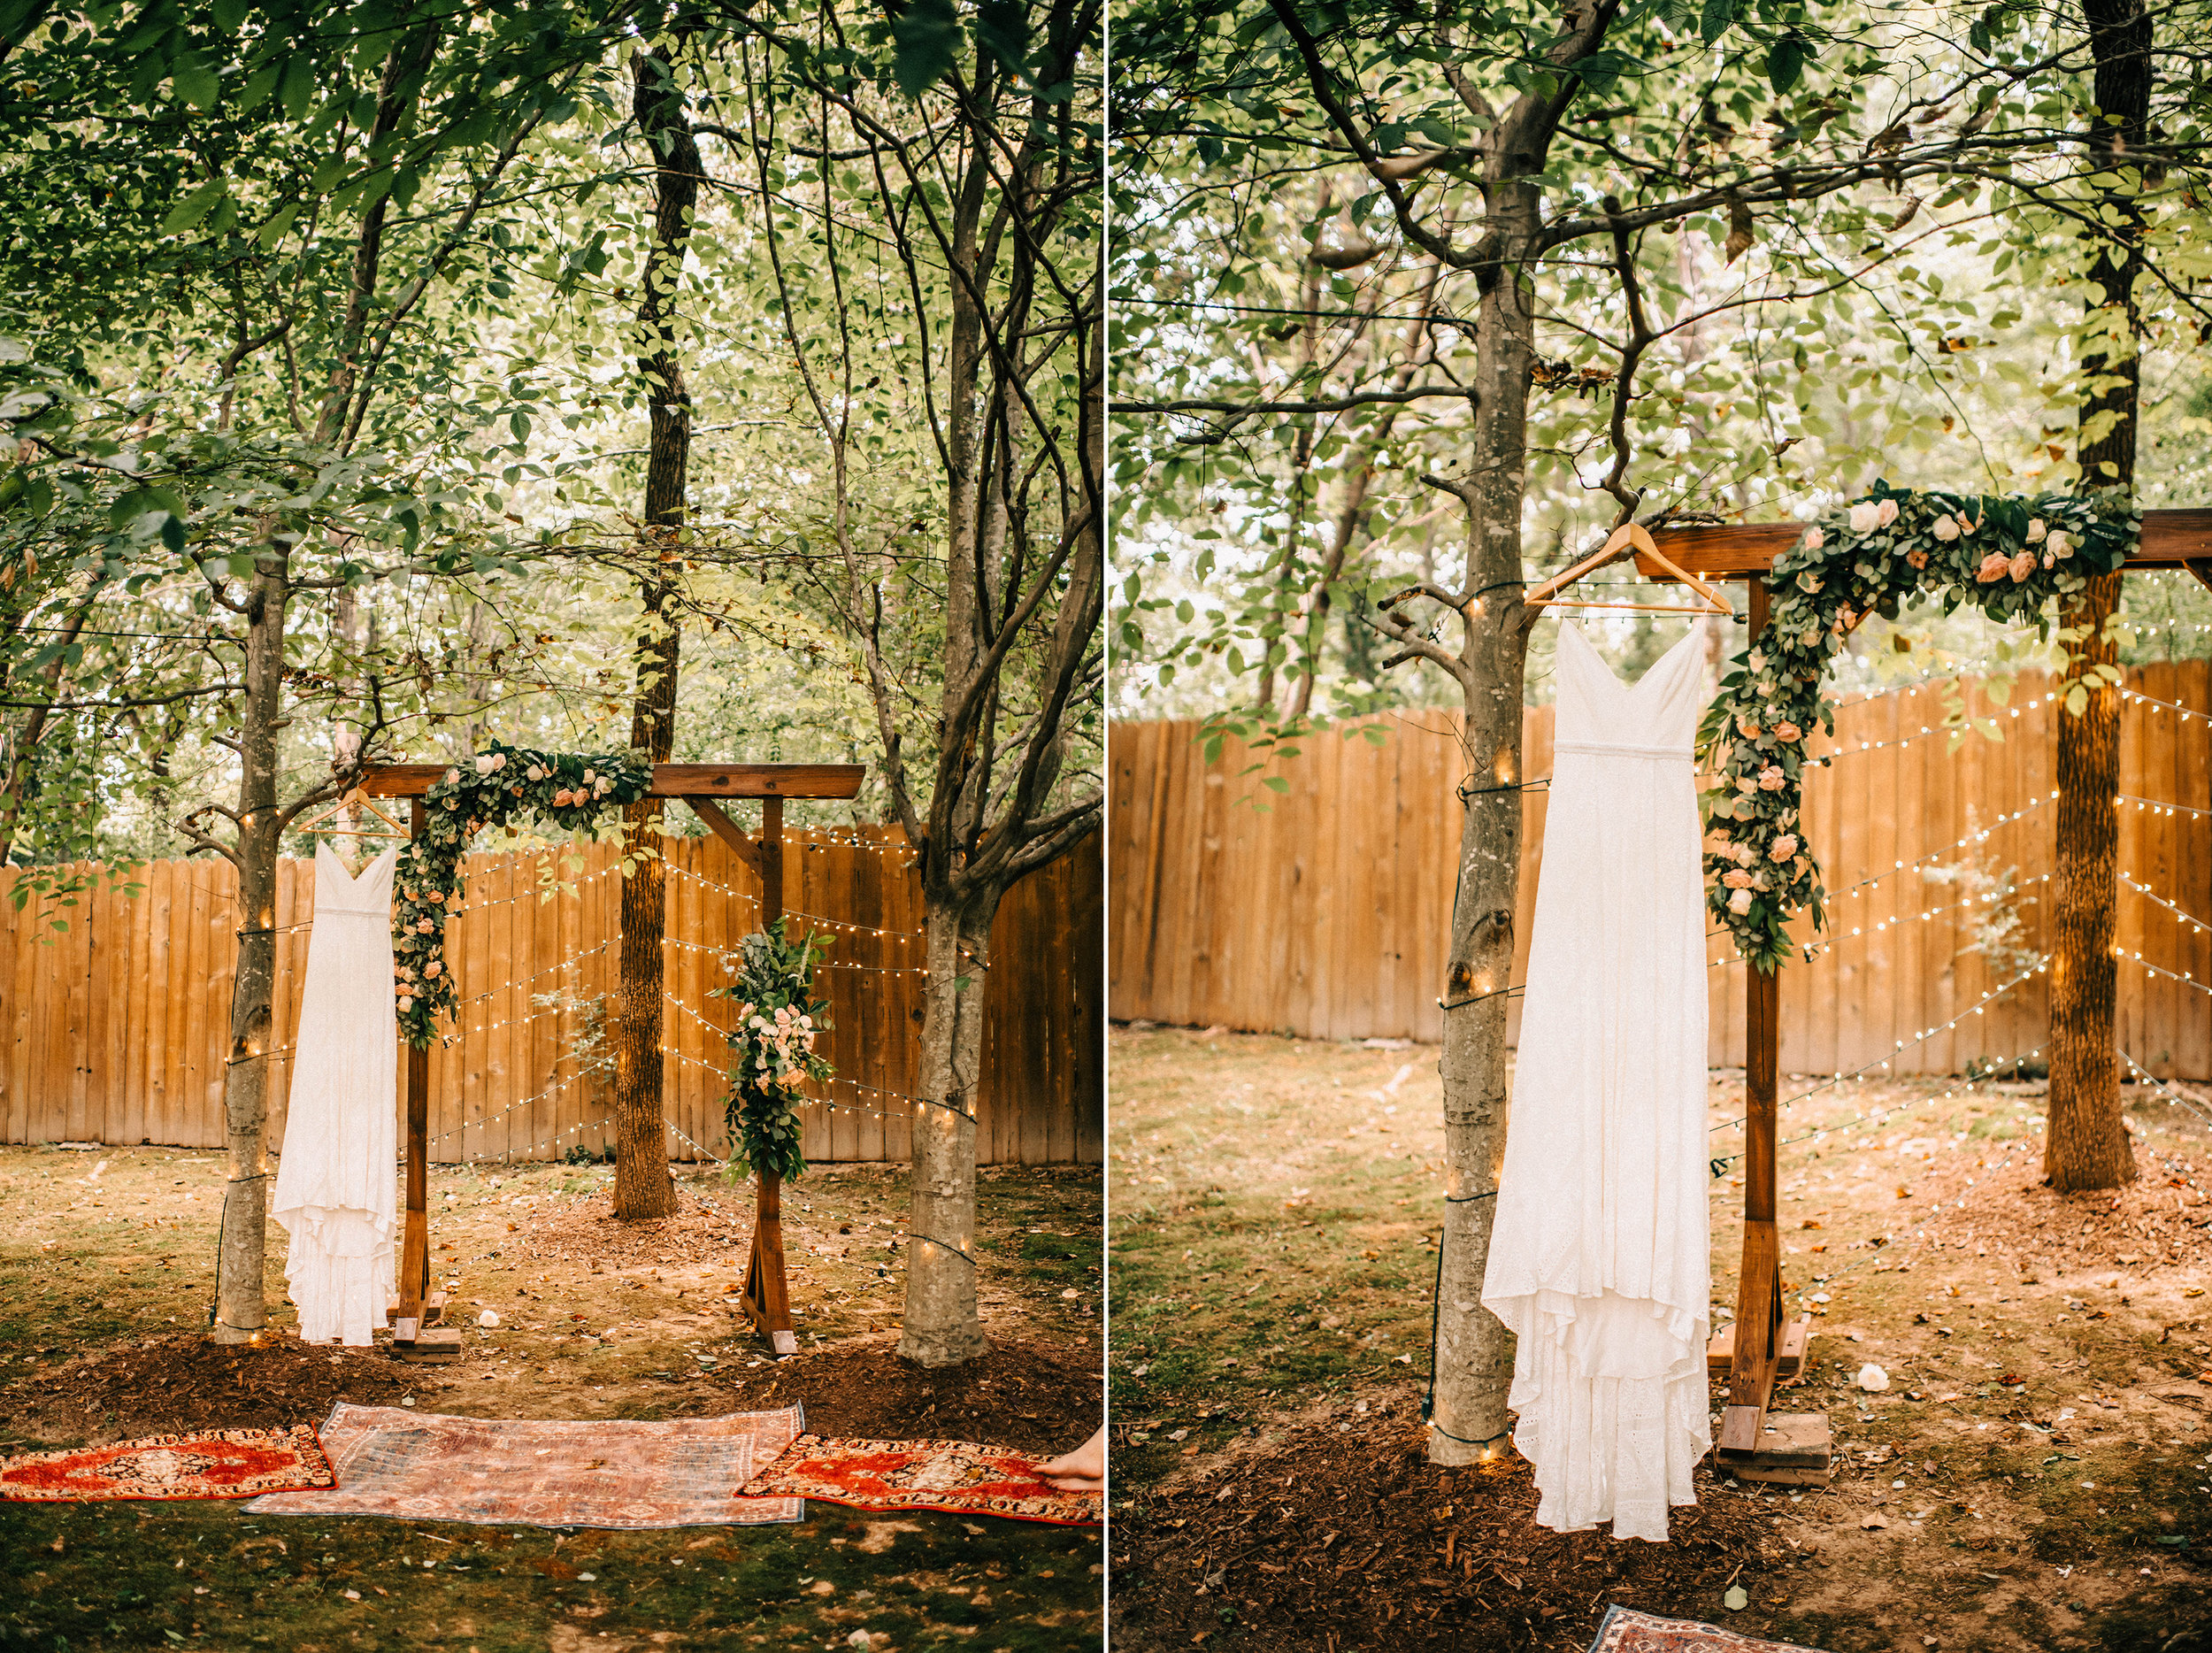 atlanta backyard wedding bay area oakland san francisco engagement wedding nontraditional fun creative eclectic photographer magic-15.jpg